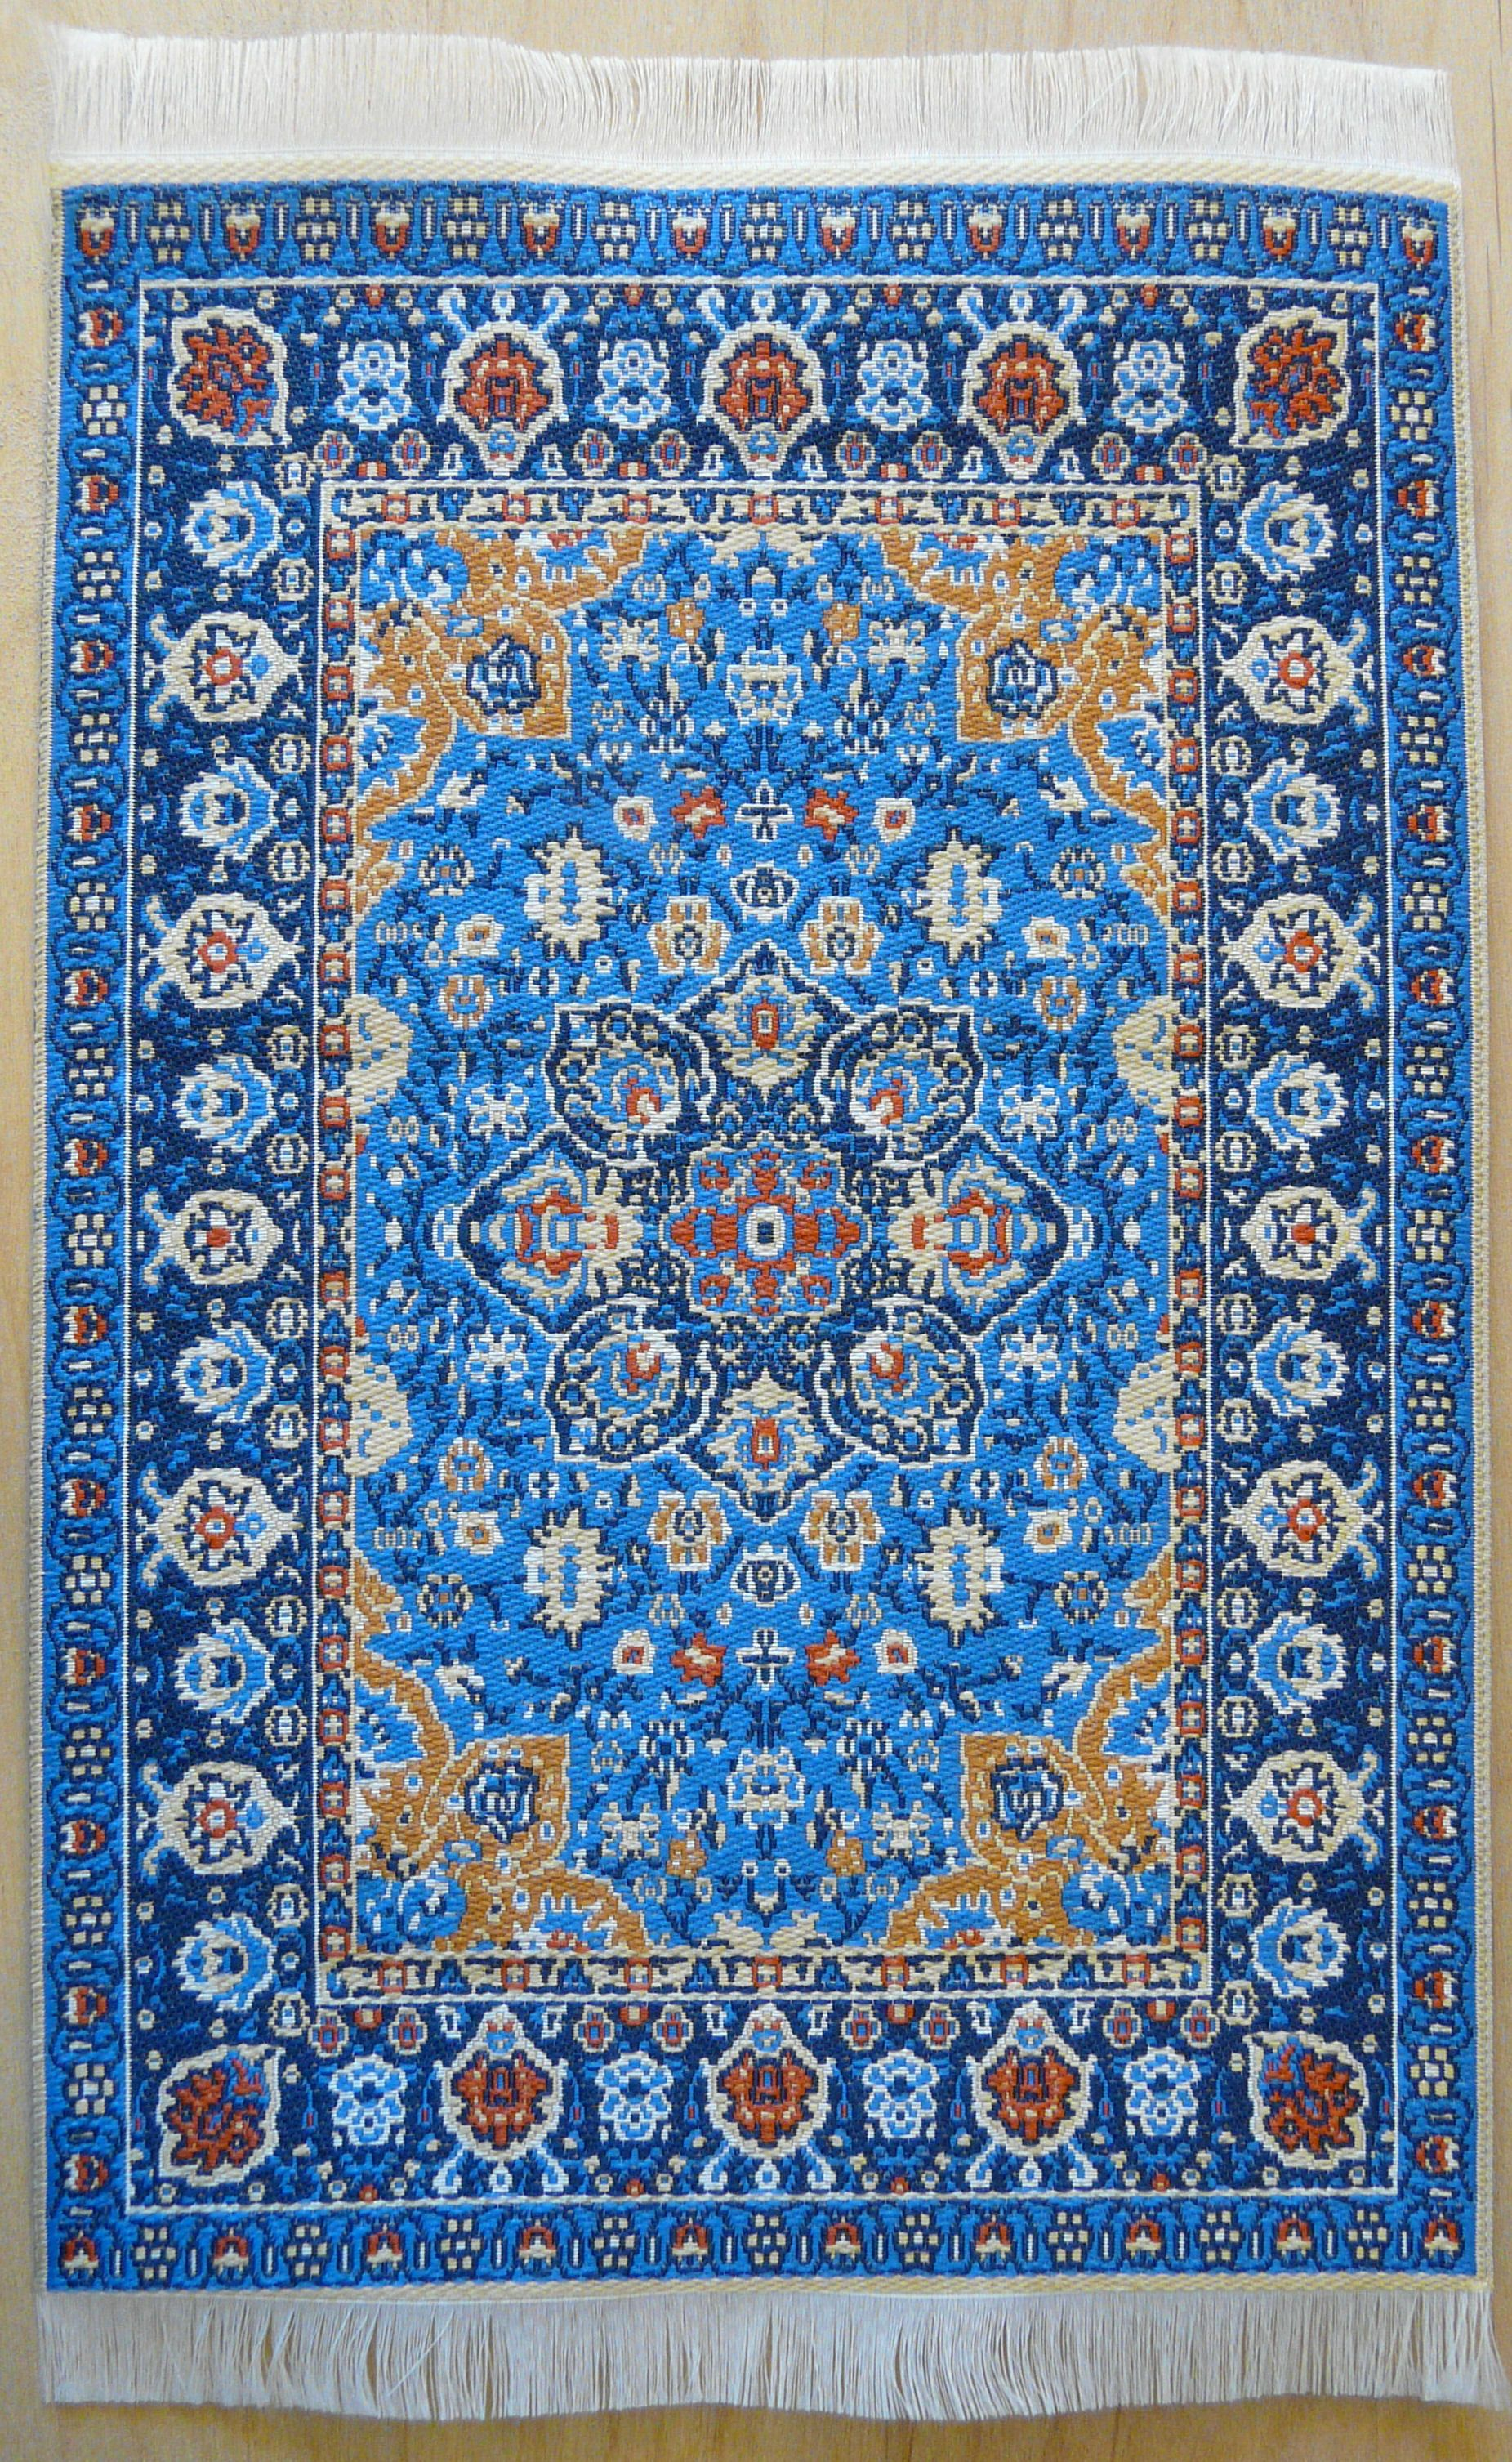 blue Turkish Rug w/Persian influence in design ...